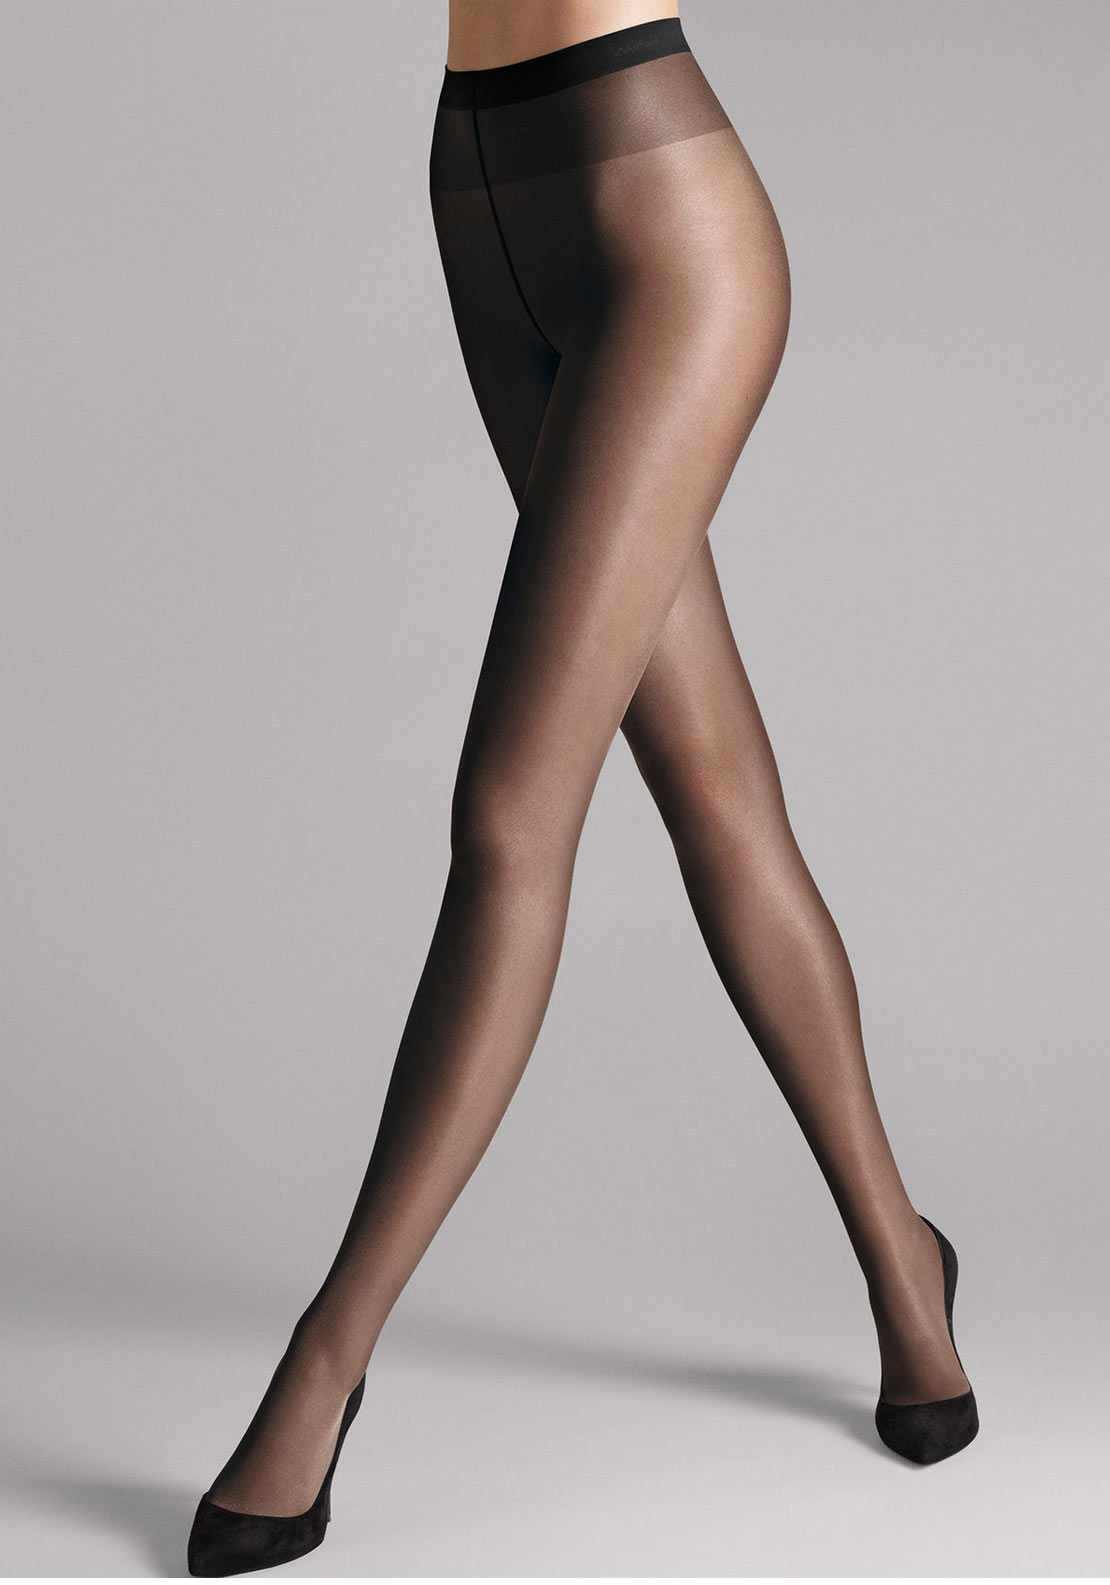 Wolford Satin Touch 20 Sheer Tights, Black